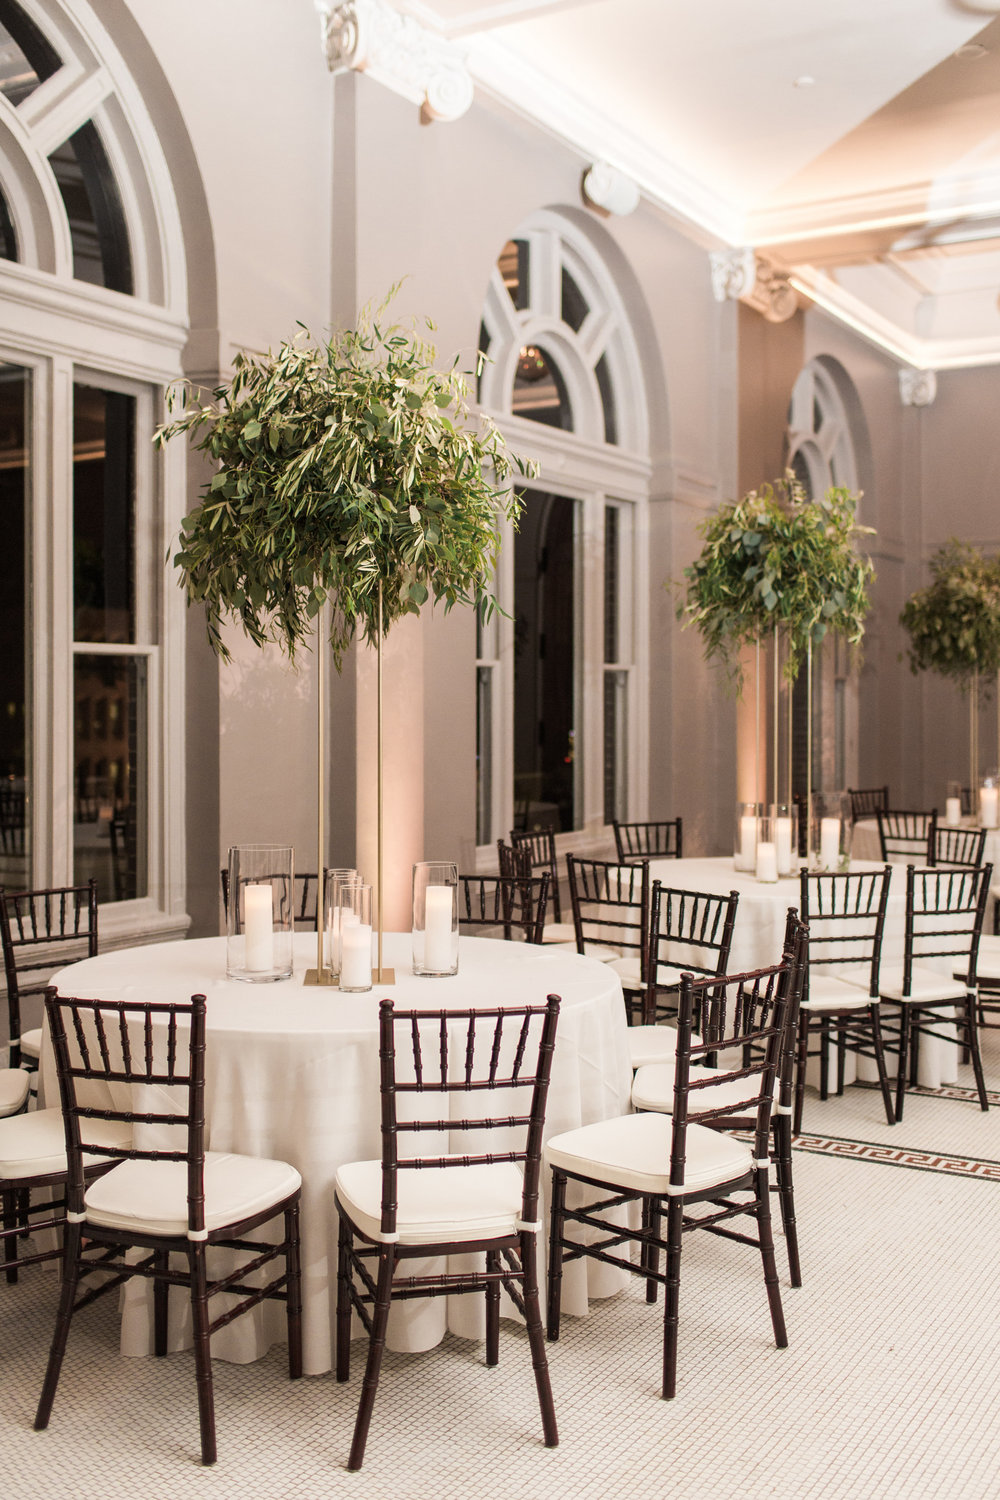 athens wedding planner — Wedding Planning Ideas, Tips, and